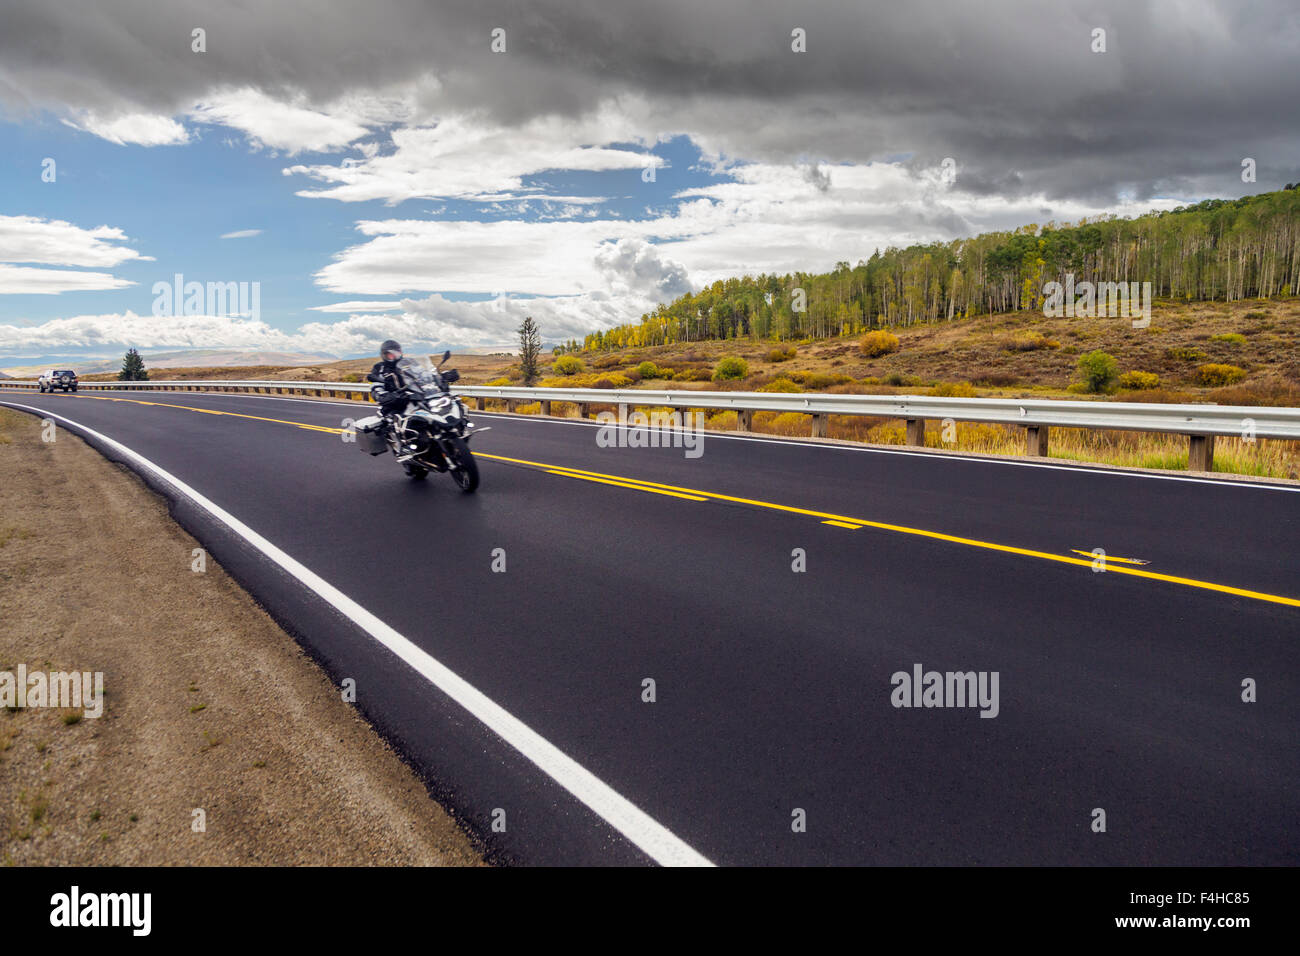 Motorcycle rider on paved road; Highway 40; North Central Colorado; USA - Stock Image